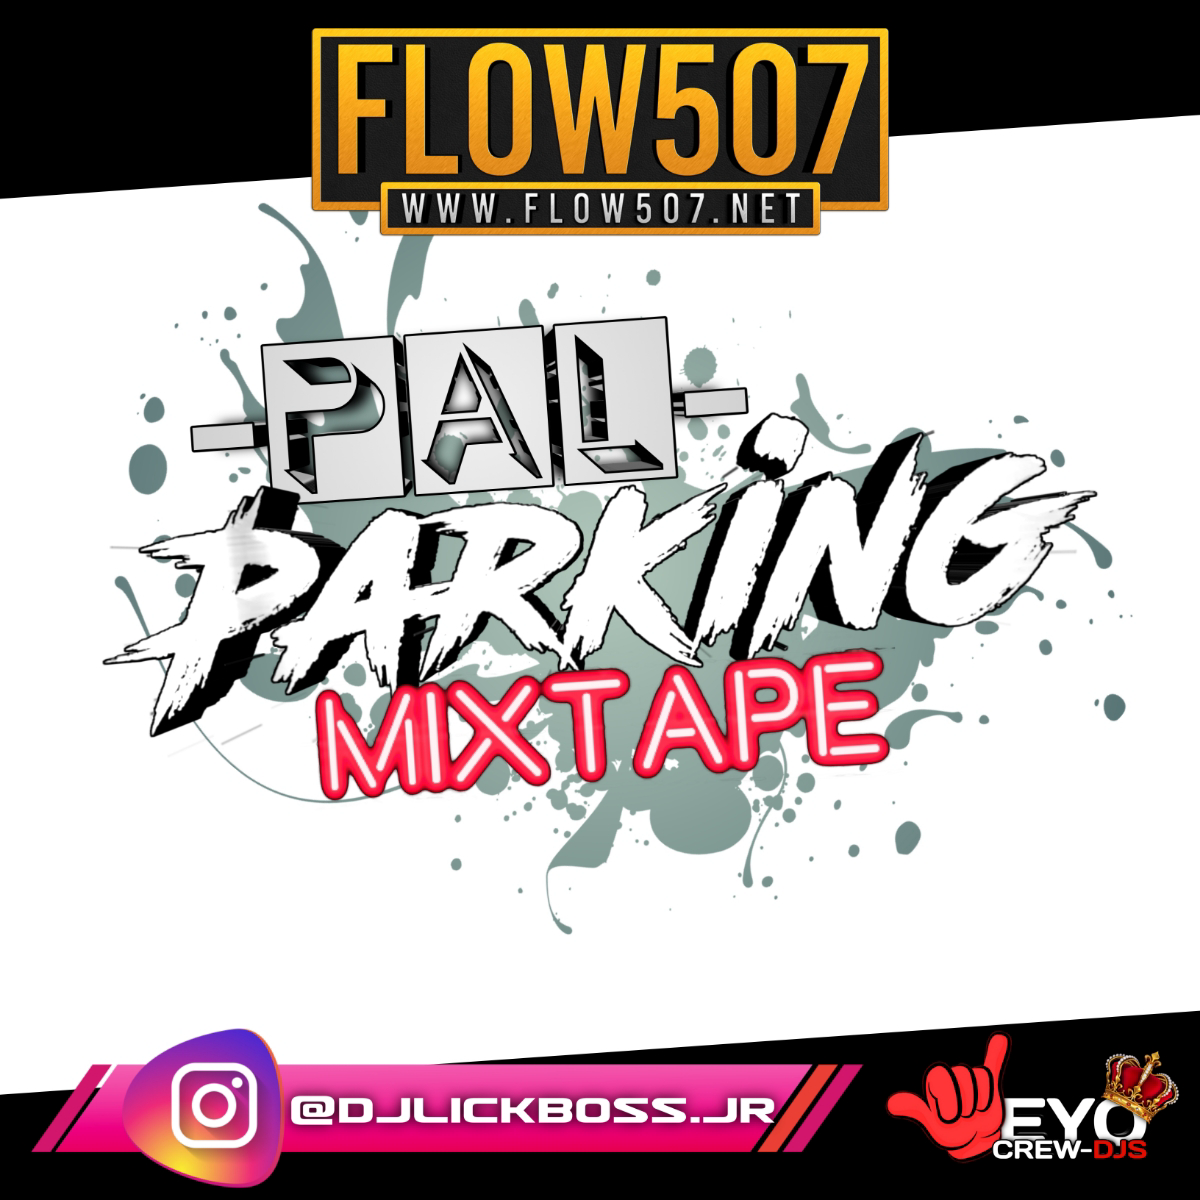 @DJLICKBOSS.JR - PAL PARKING MIXTAPE MERENGUE